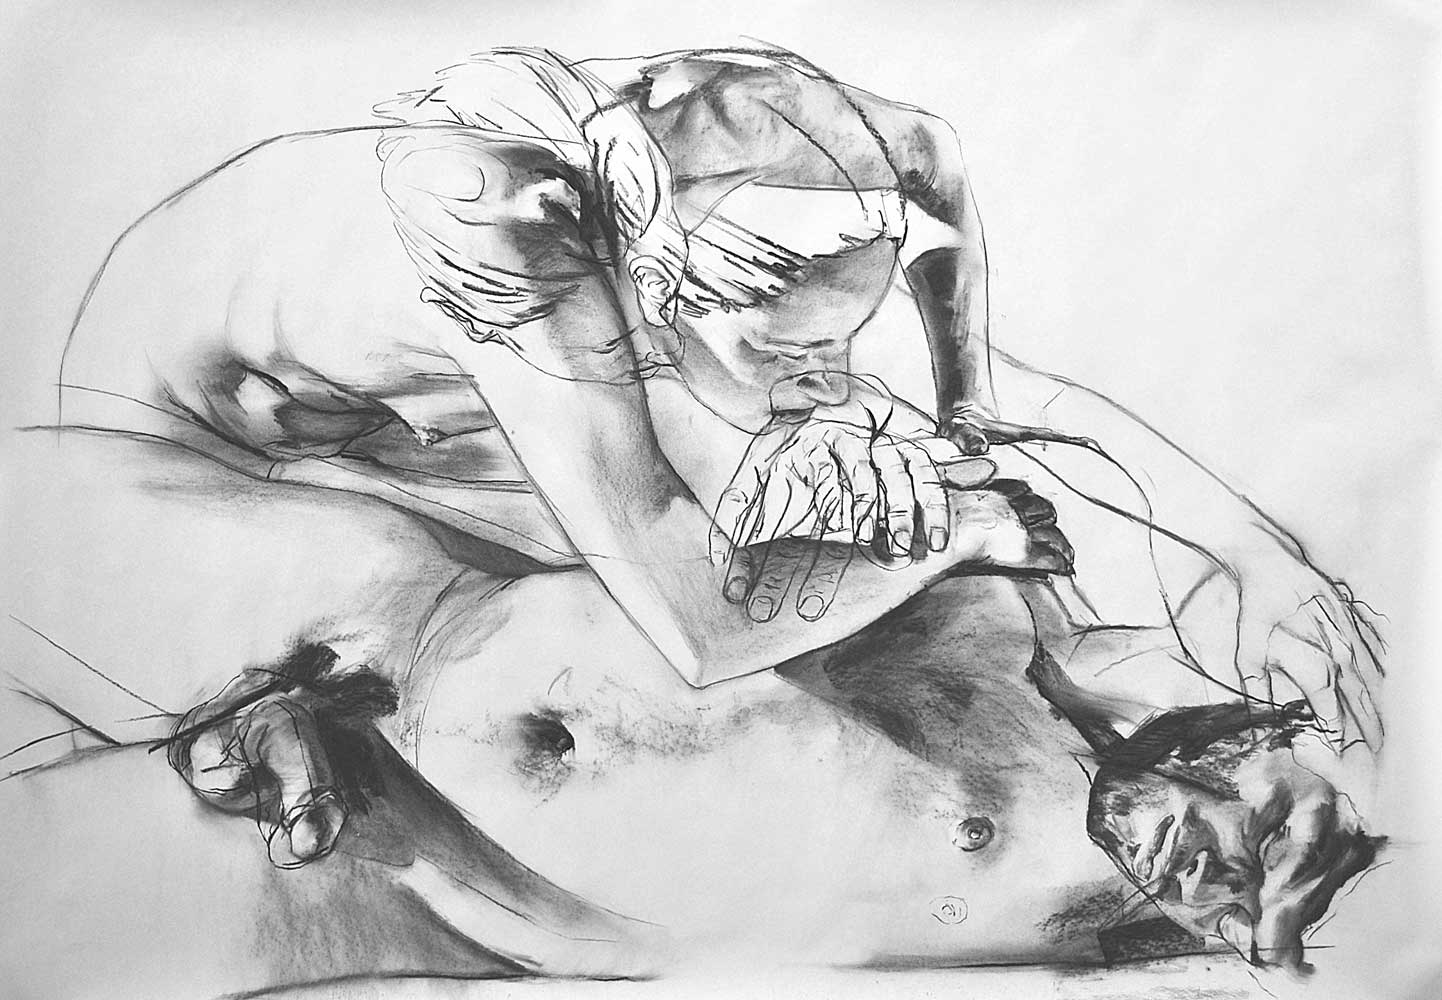 STUDY FOR AUREOLE, 2013, charcoal on paper, 42 x 60 inches (106.7 x 152.4 cm).